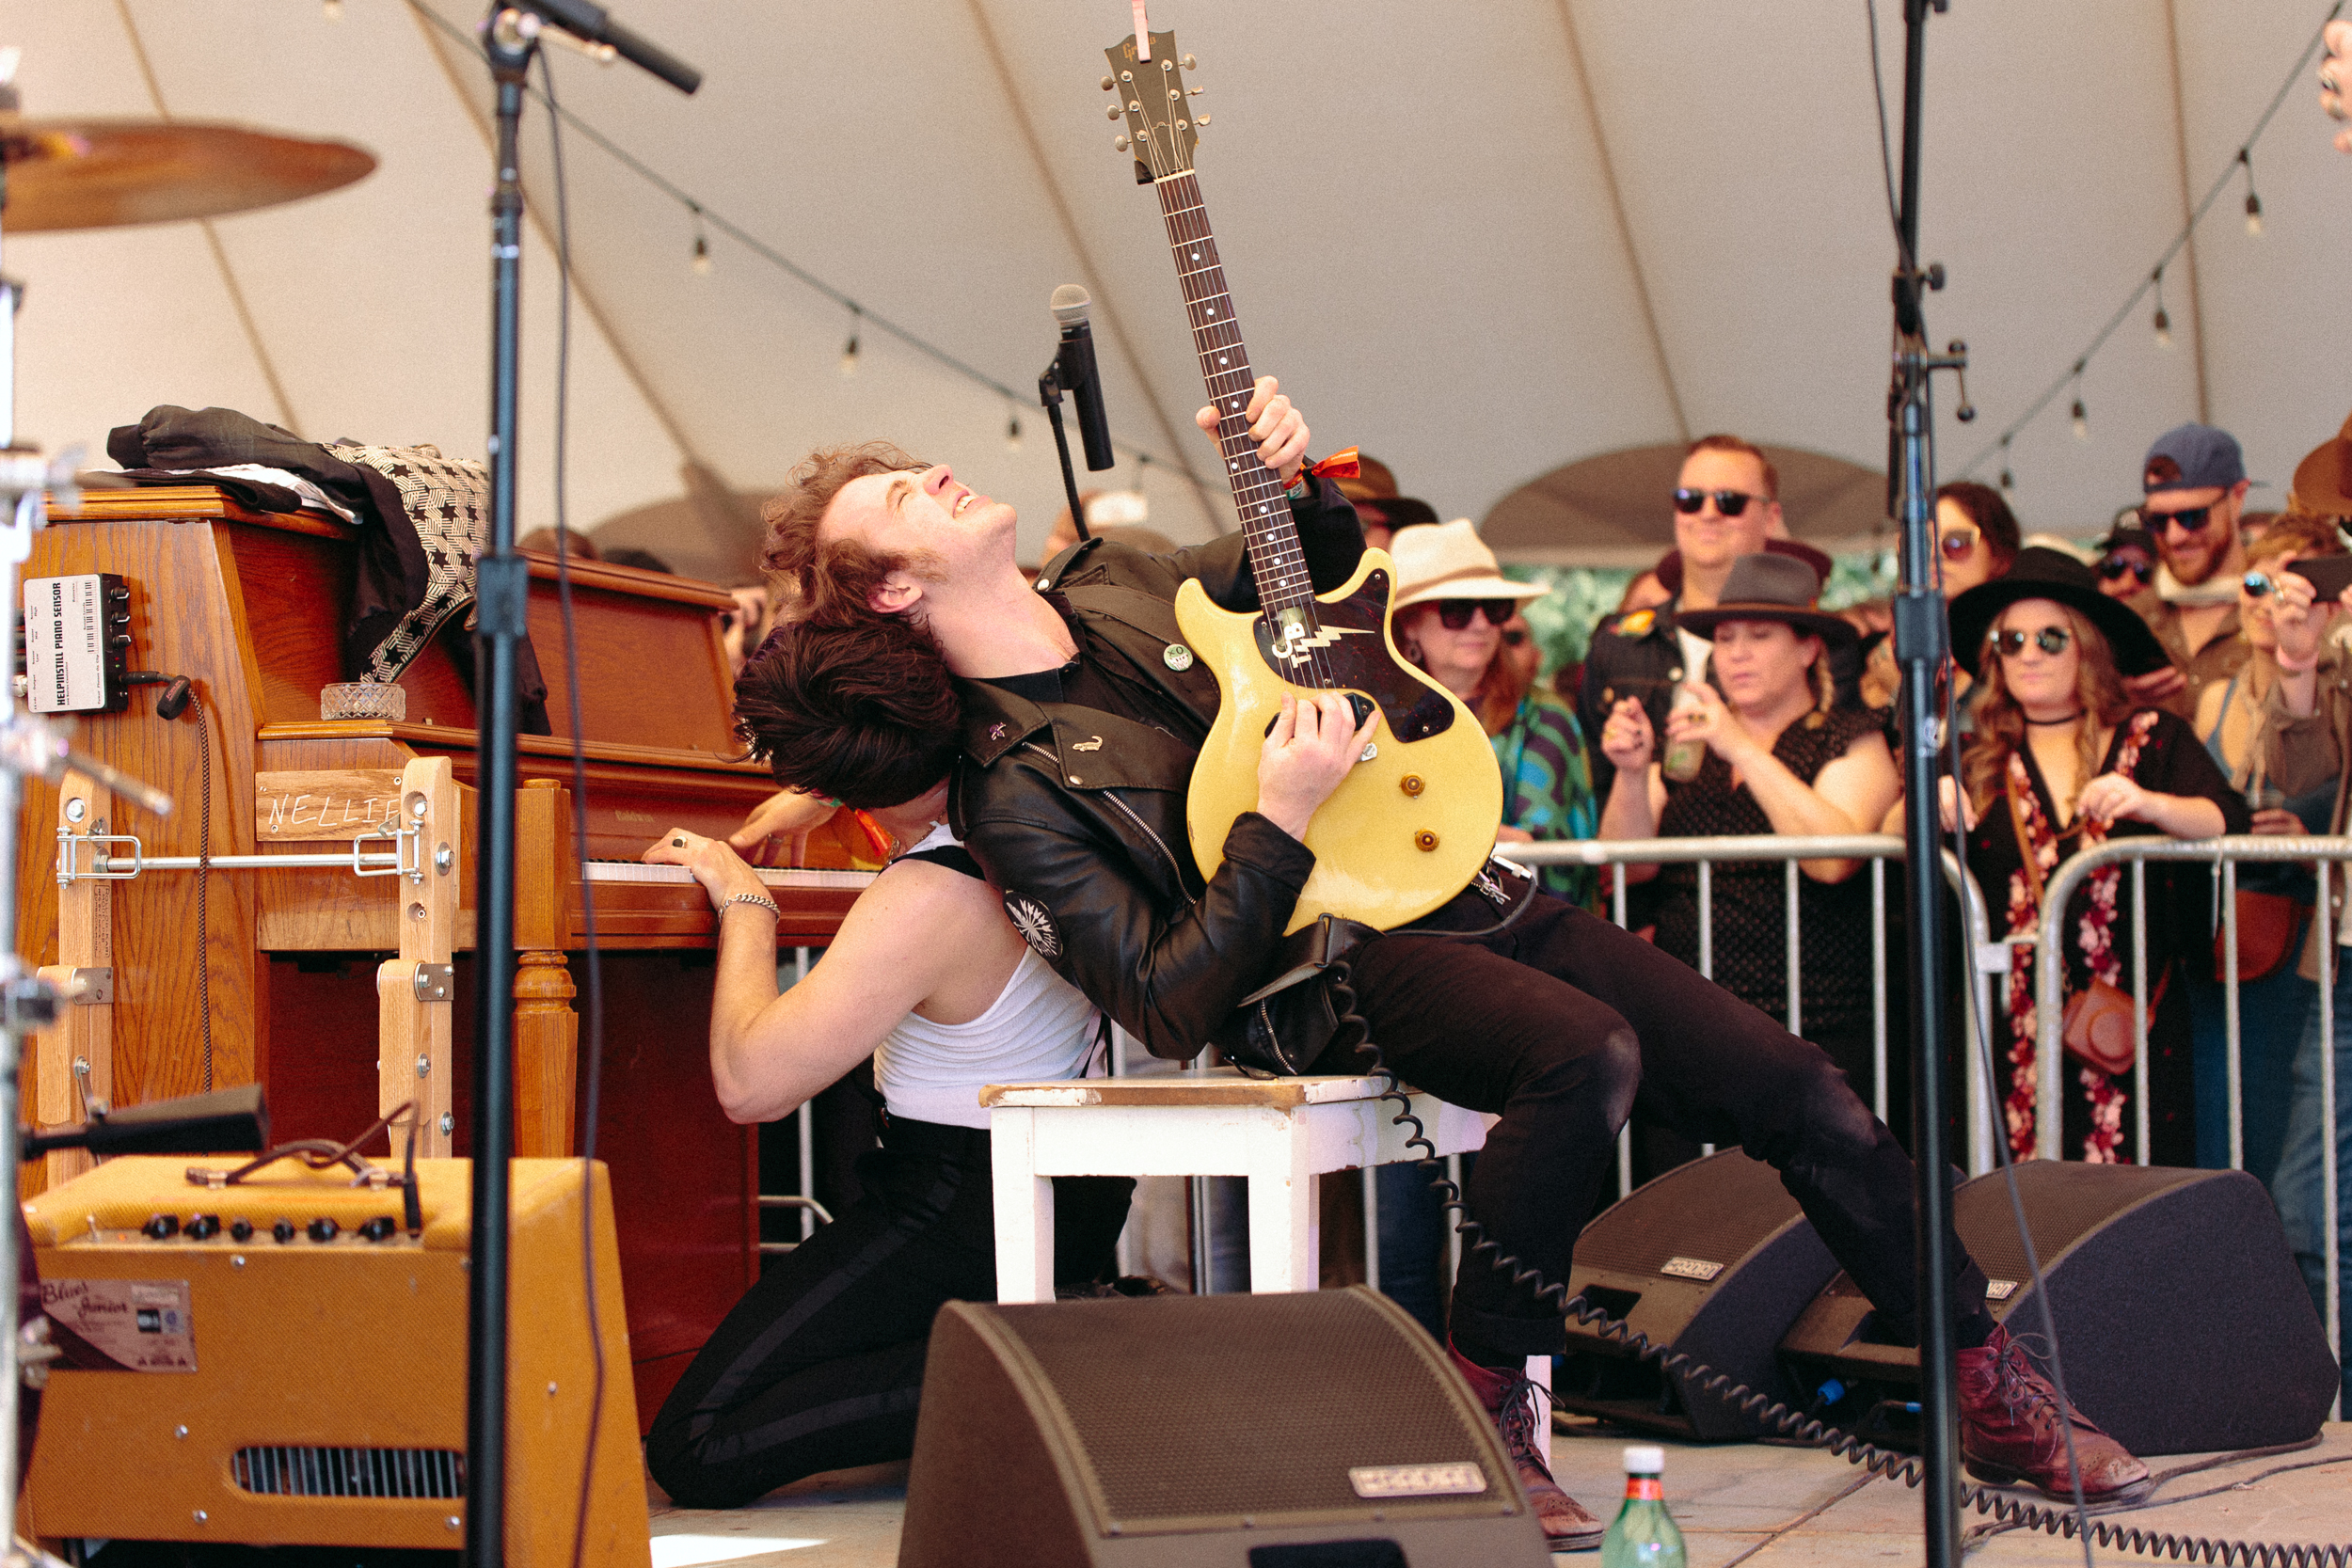 Low Cut Connie at Luck Reunion (Photo by Mauricio Castro)